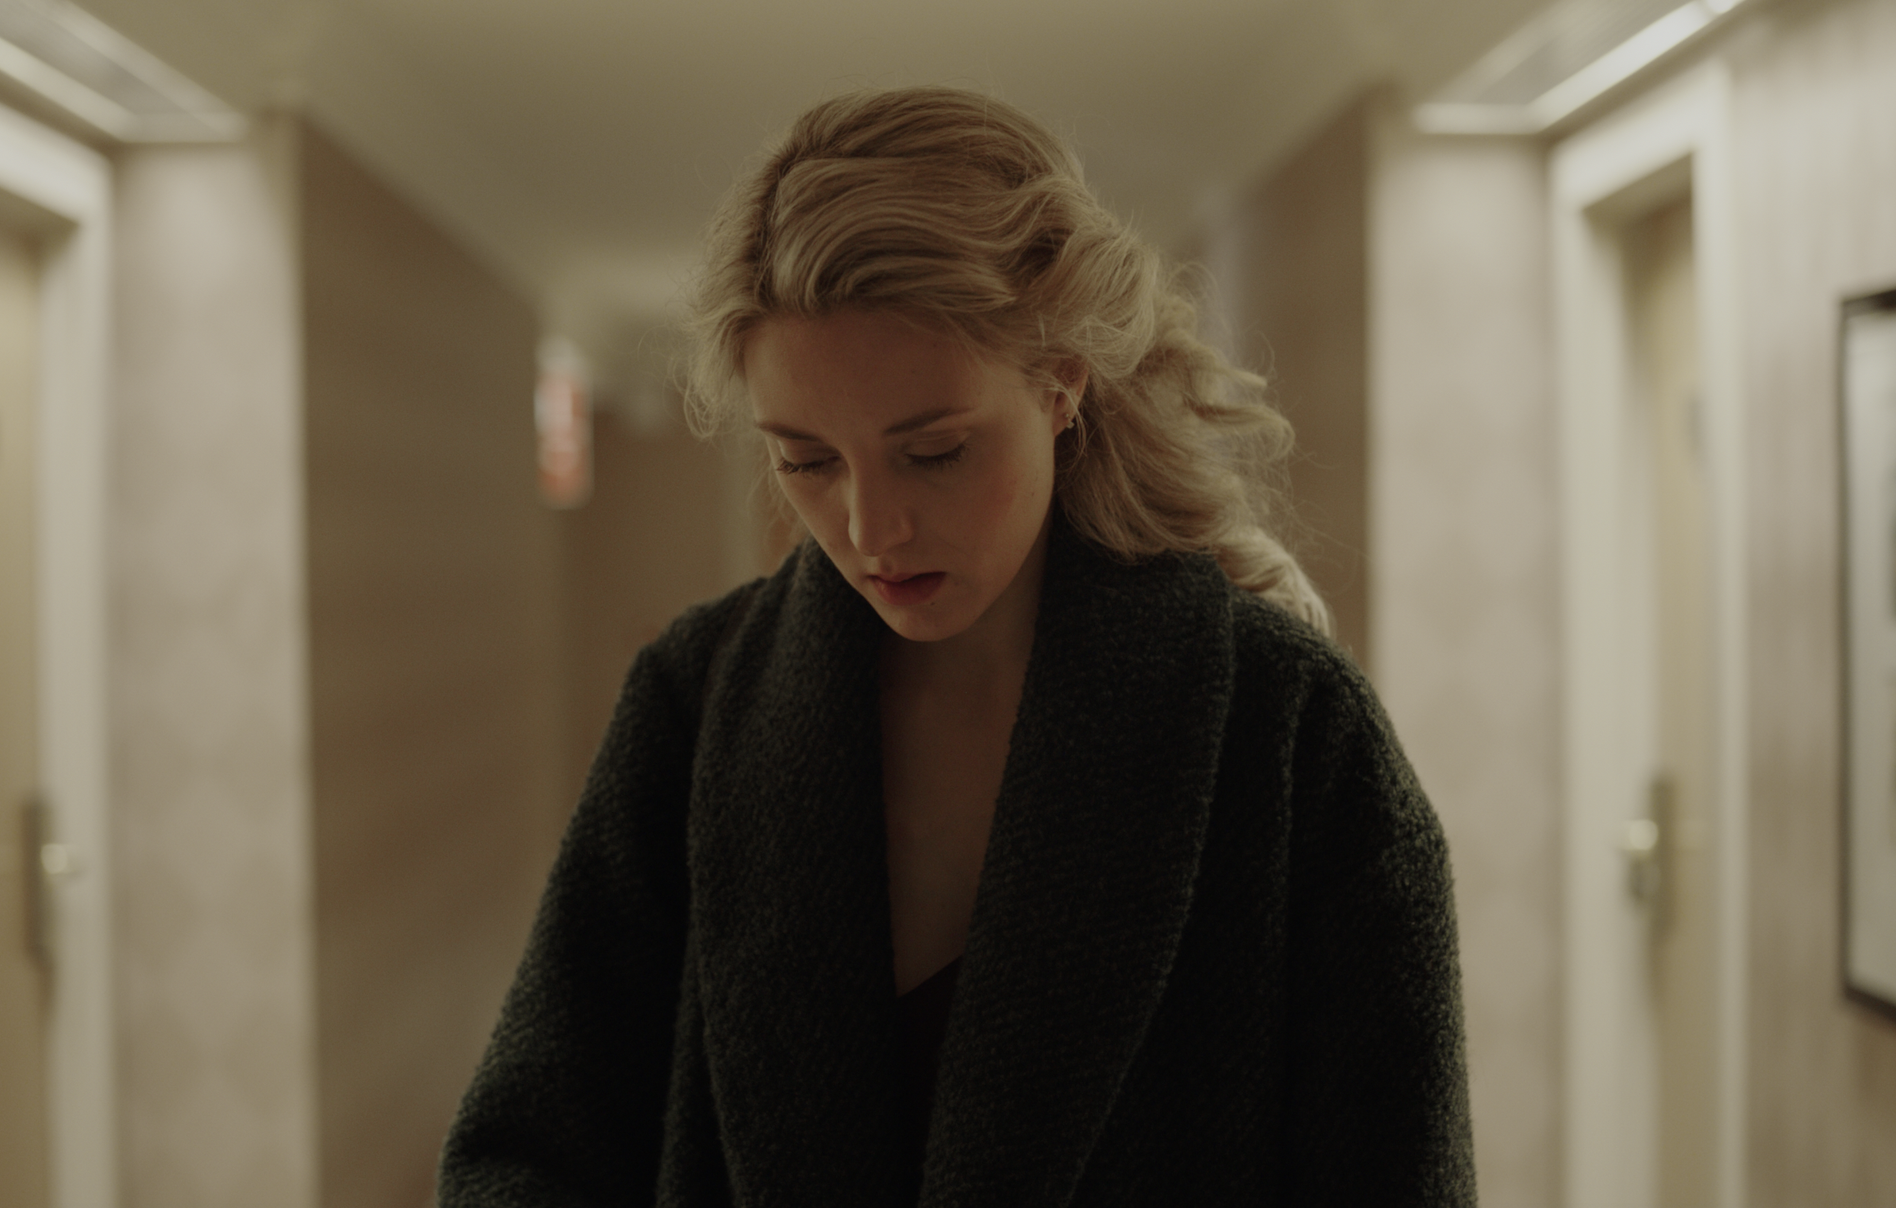 Le passe devant nous - Alice leads a routine life as an escort and avoids any significant form of social contact. After the death of her ex, she is forced to take care of the son she abandoned years earlier. Her seeming indifference comes abruptly to an end, as she is confronted with the emotional emptiness in her life.